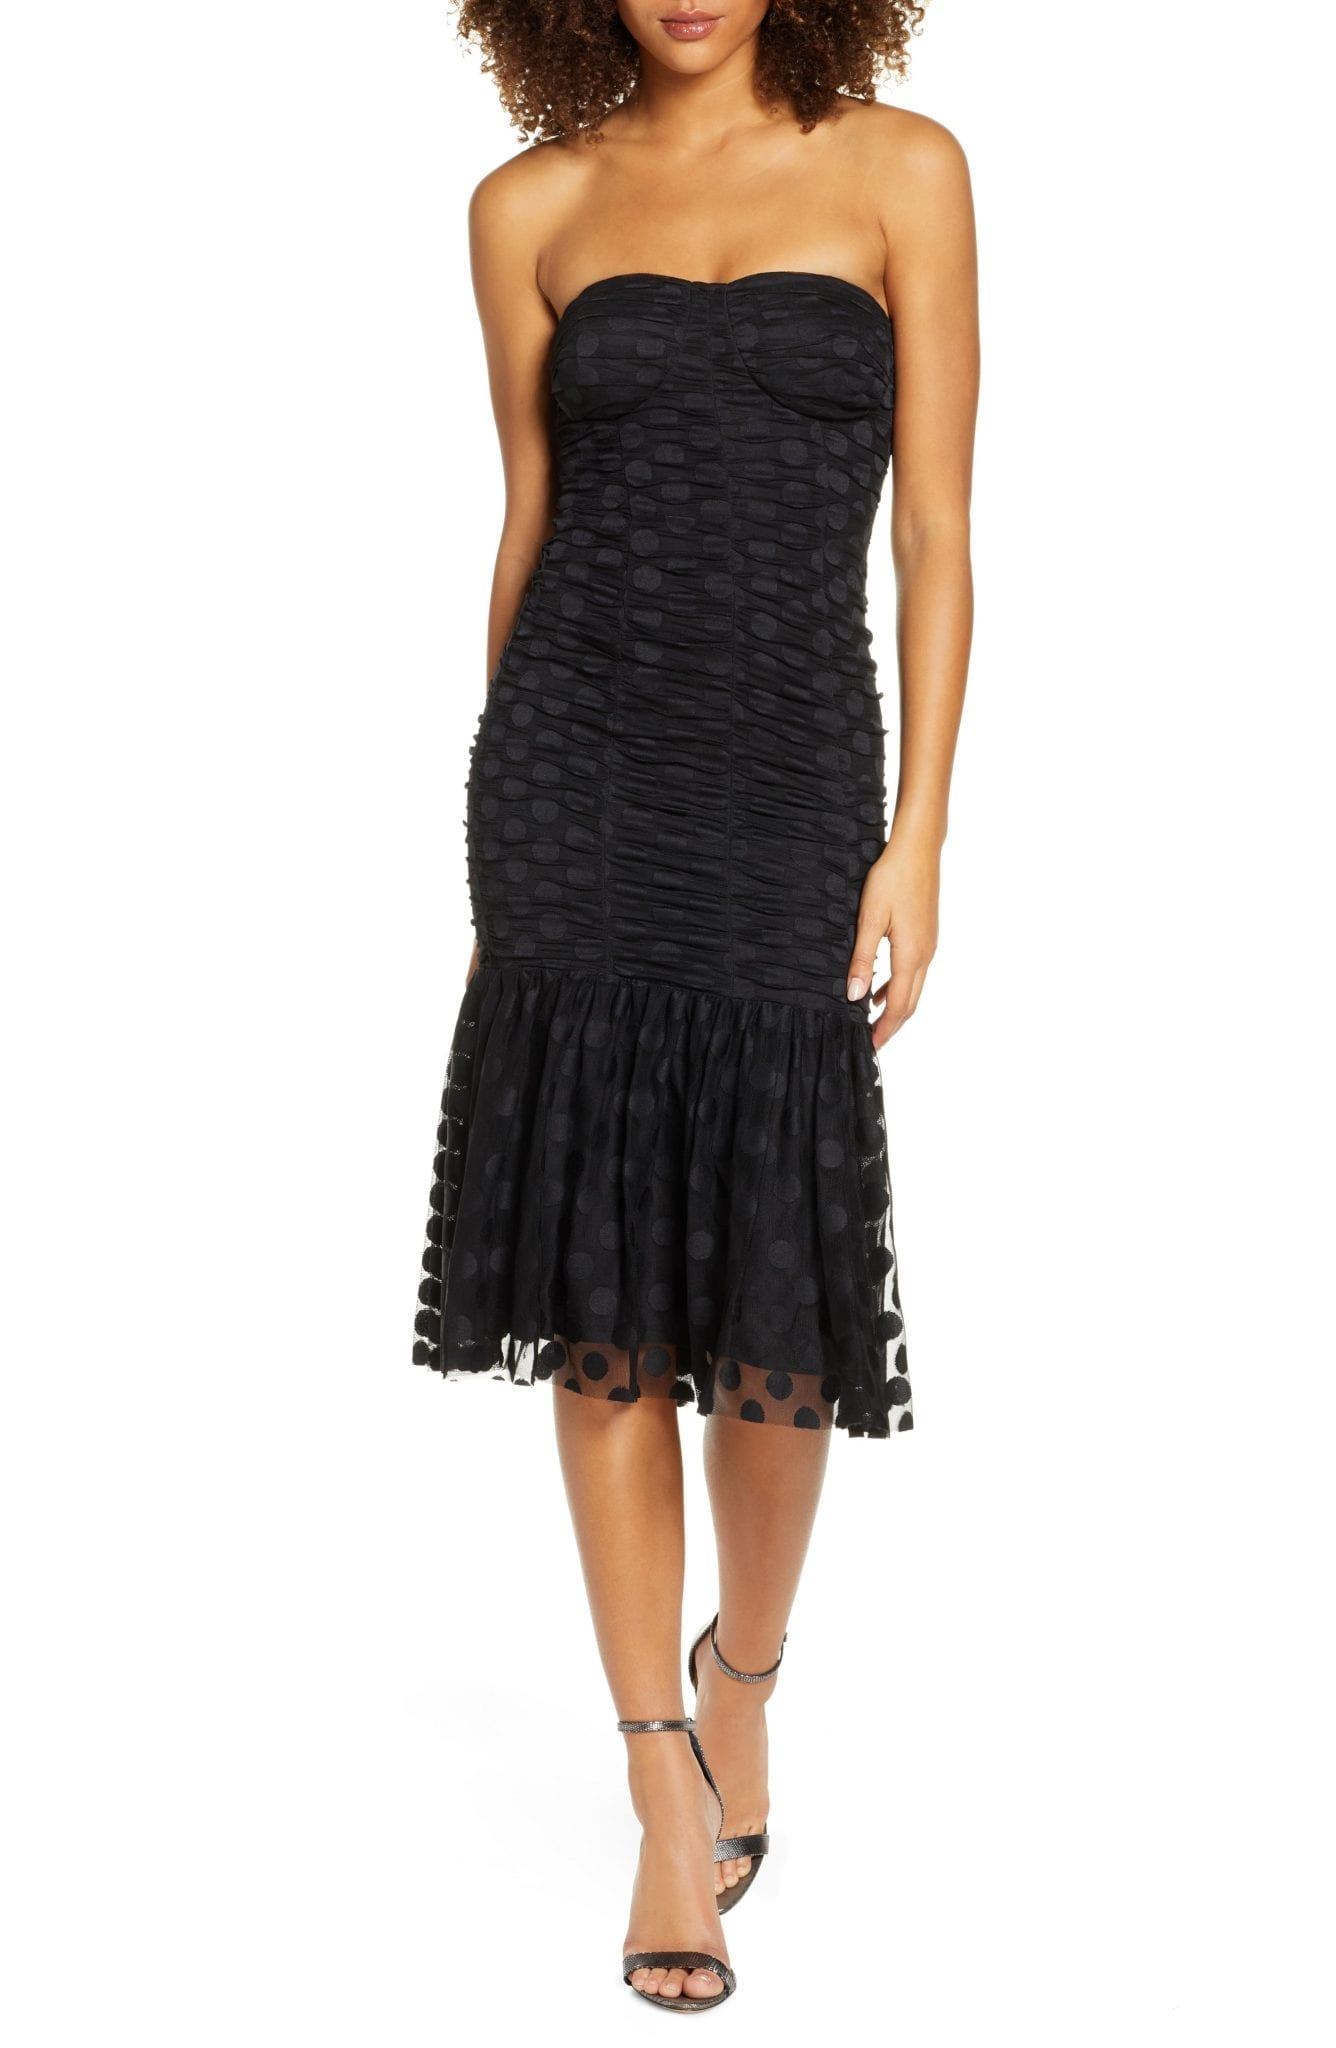 ALI & JAY Strapless Mesh Cocktail Dress